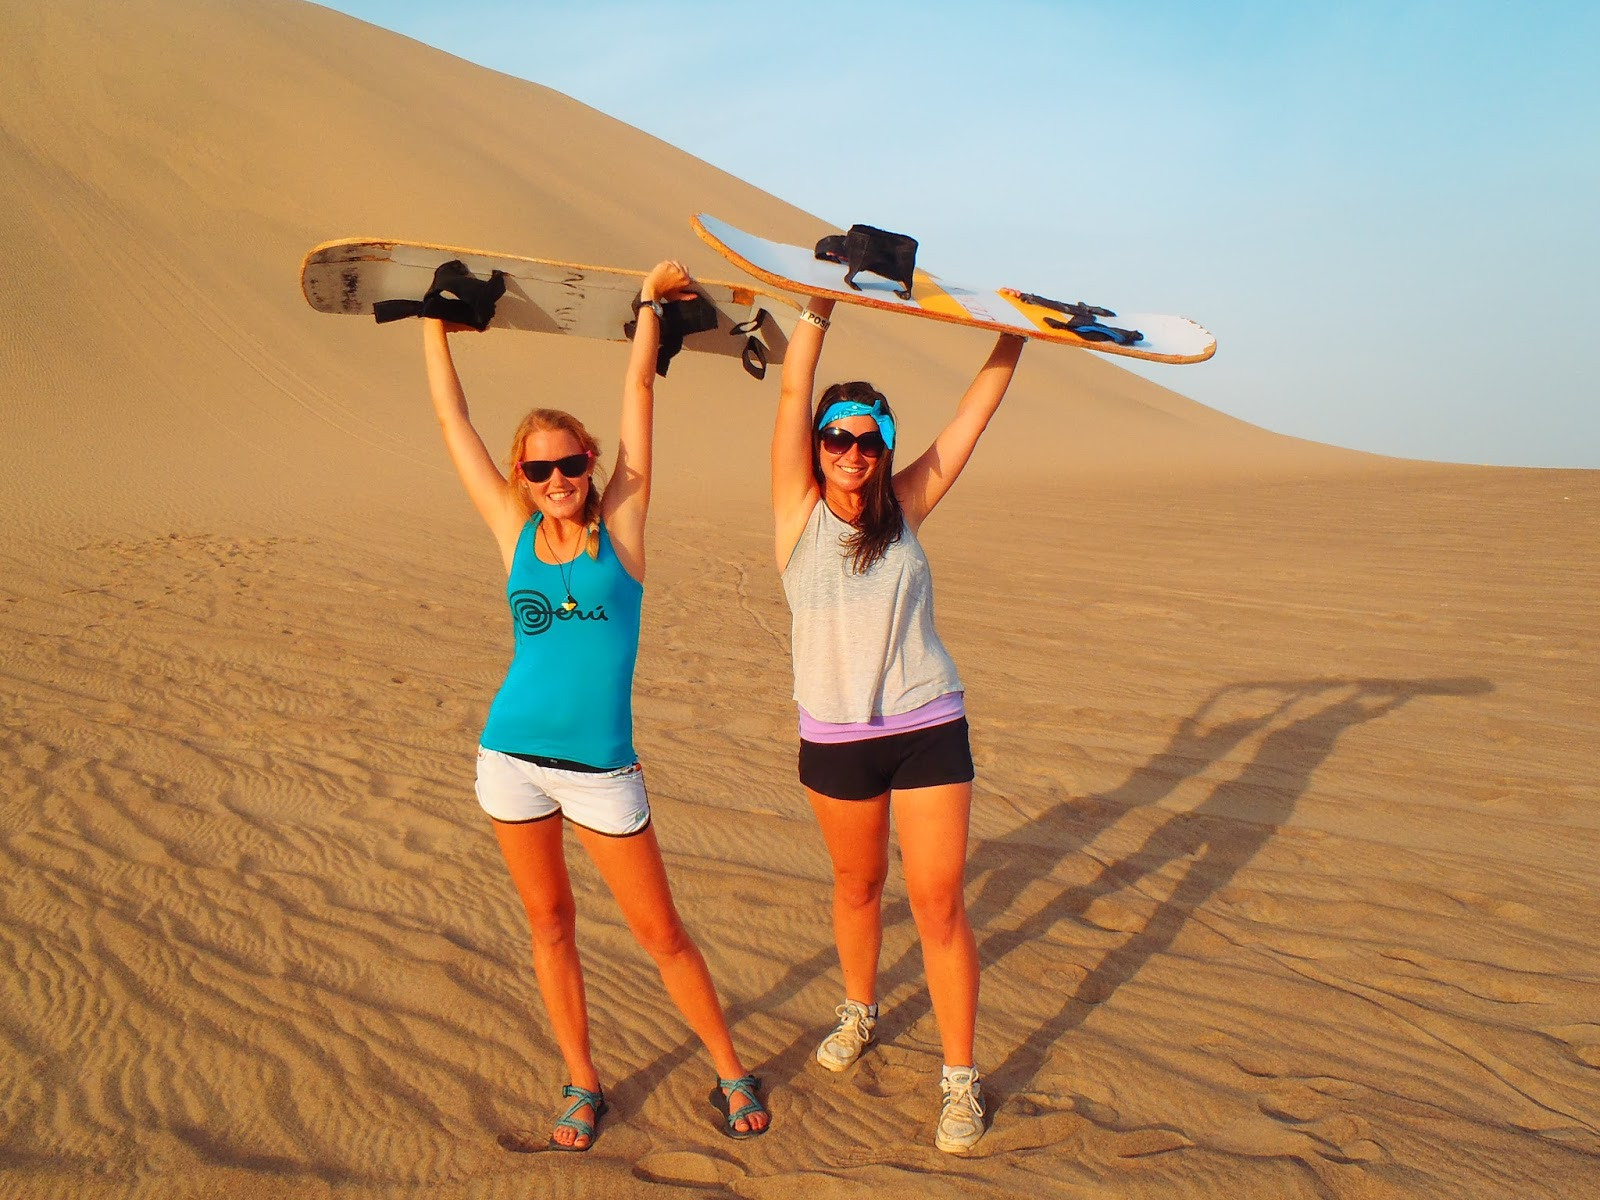 Simone and Nina in Peru Sandboarding